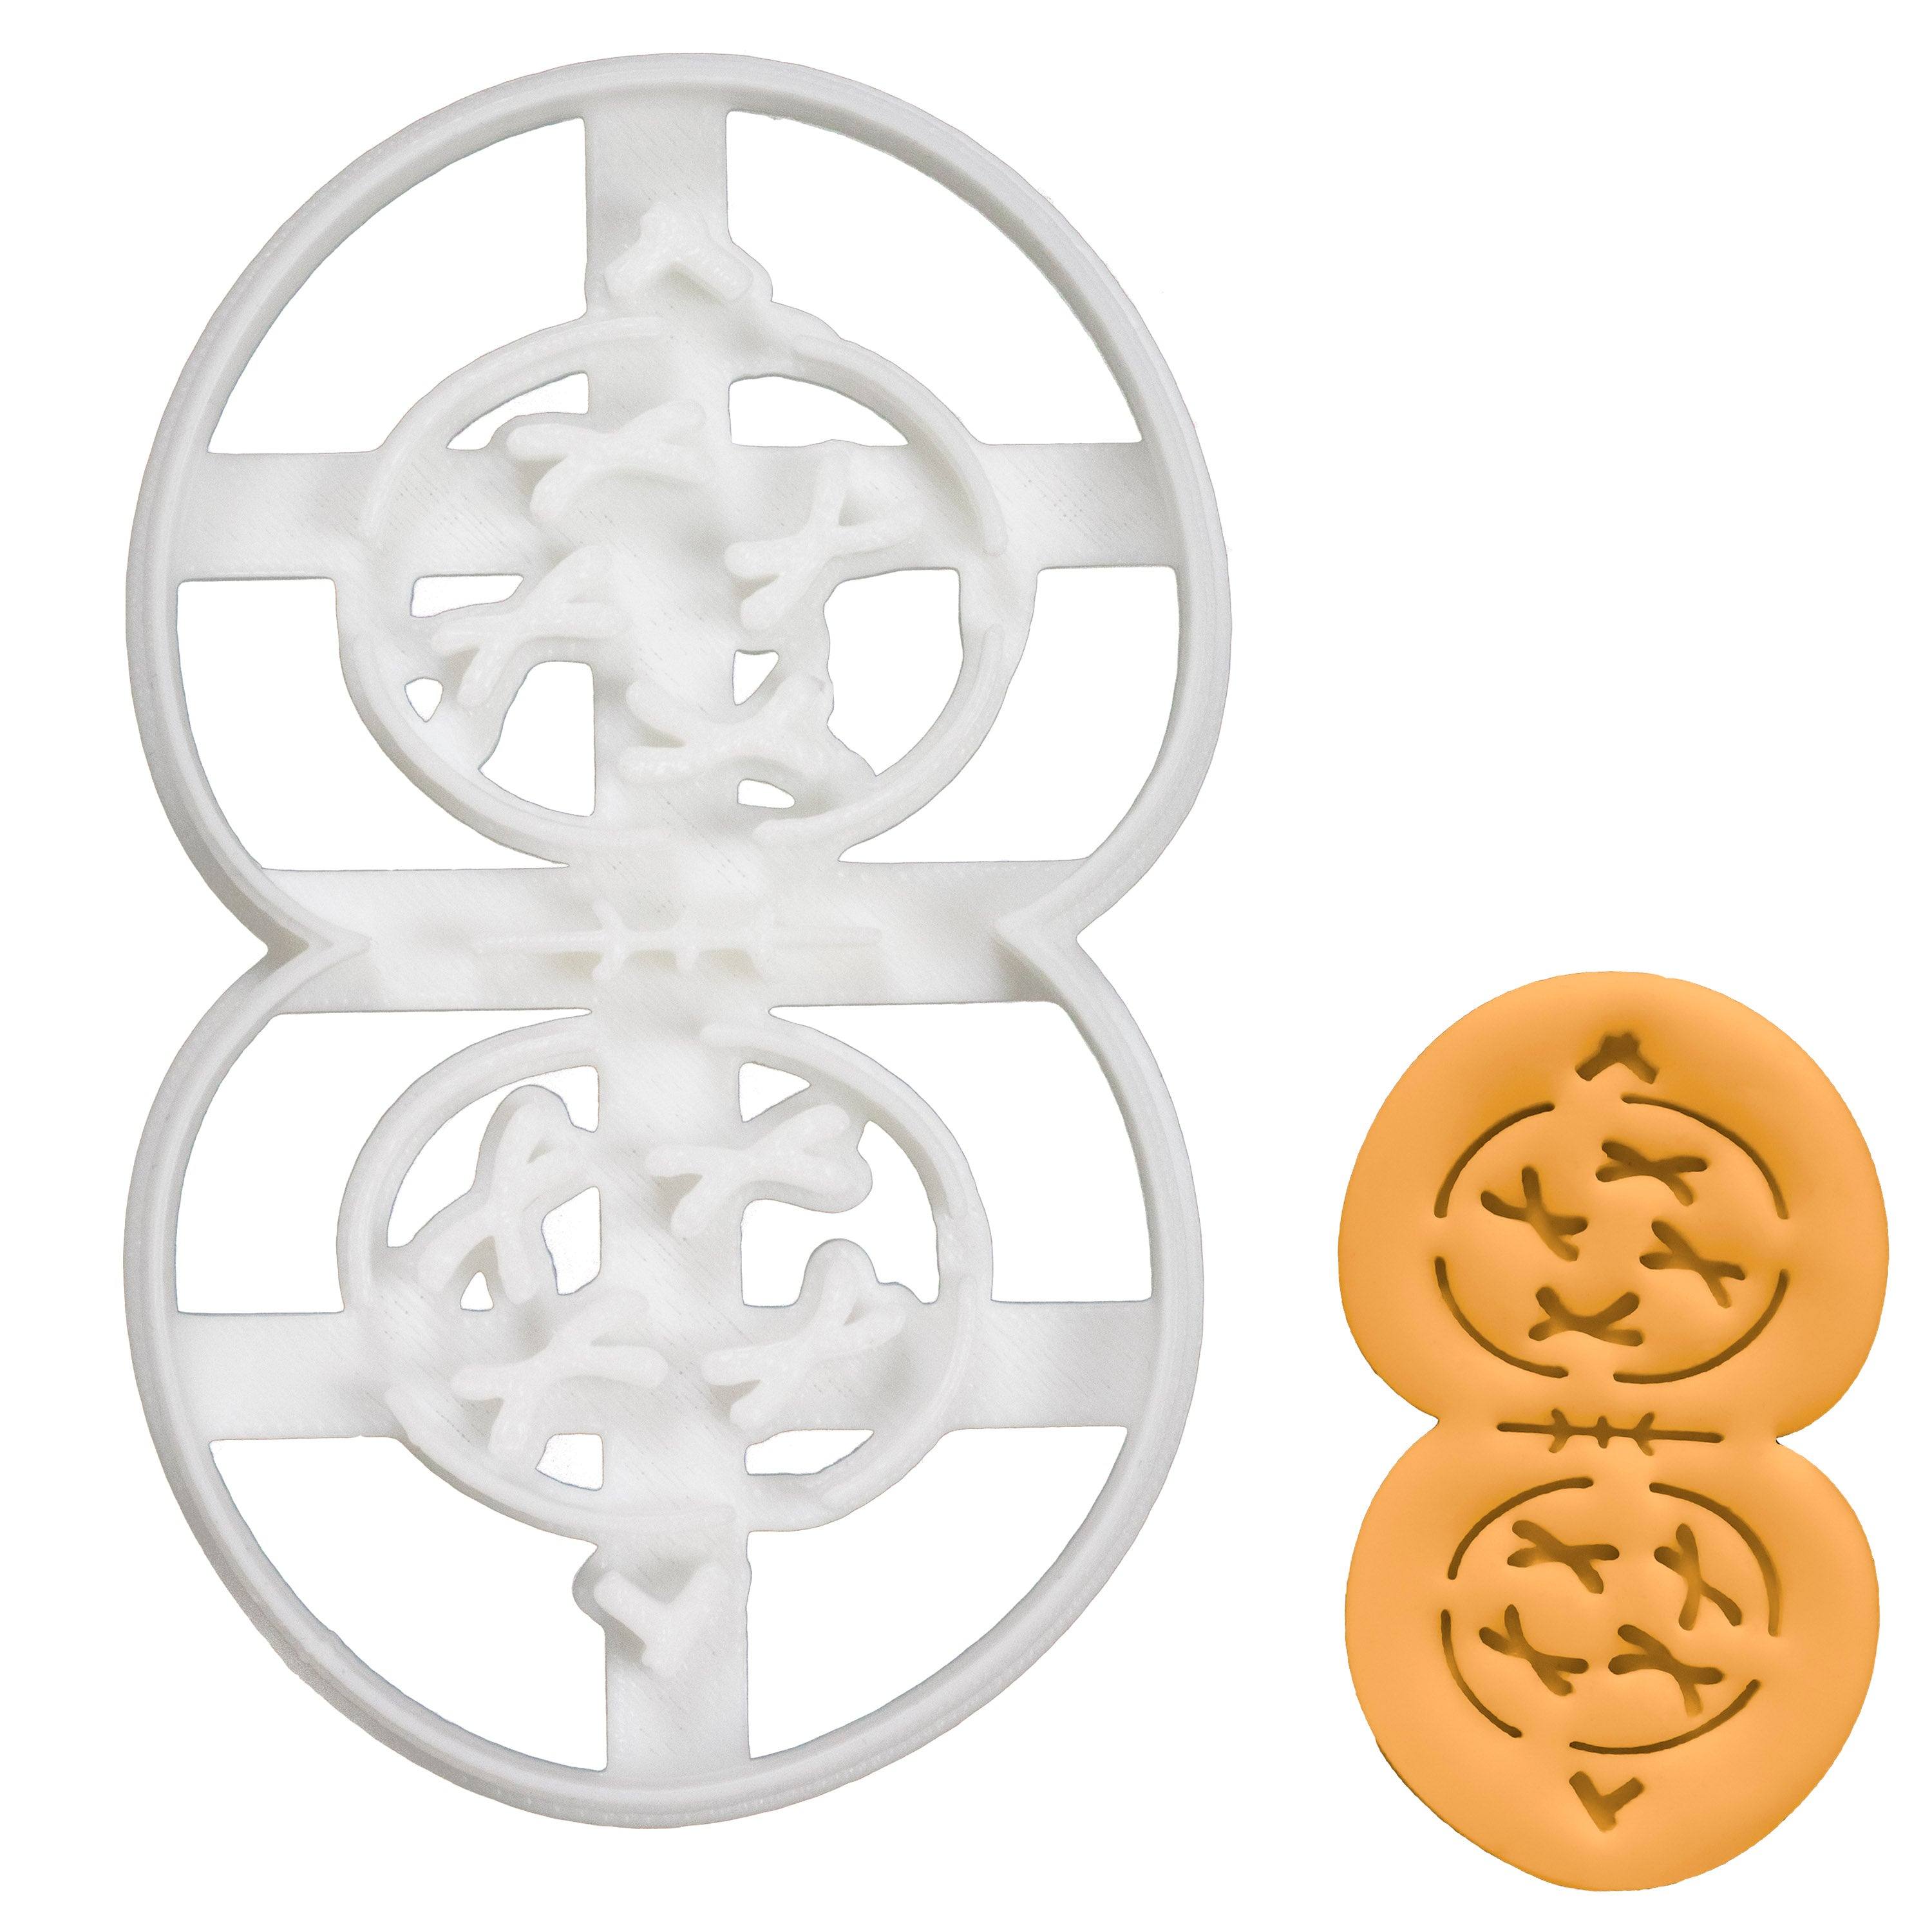 Meiosis I Telophase I Cookie Cutter